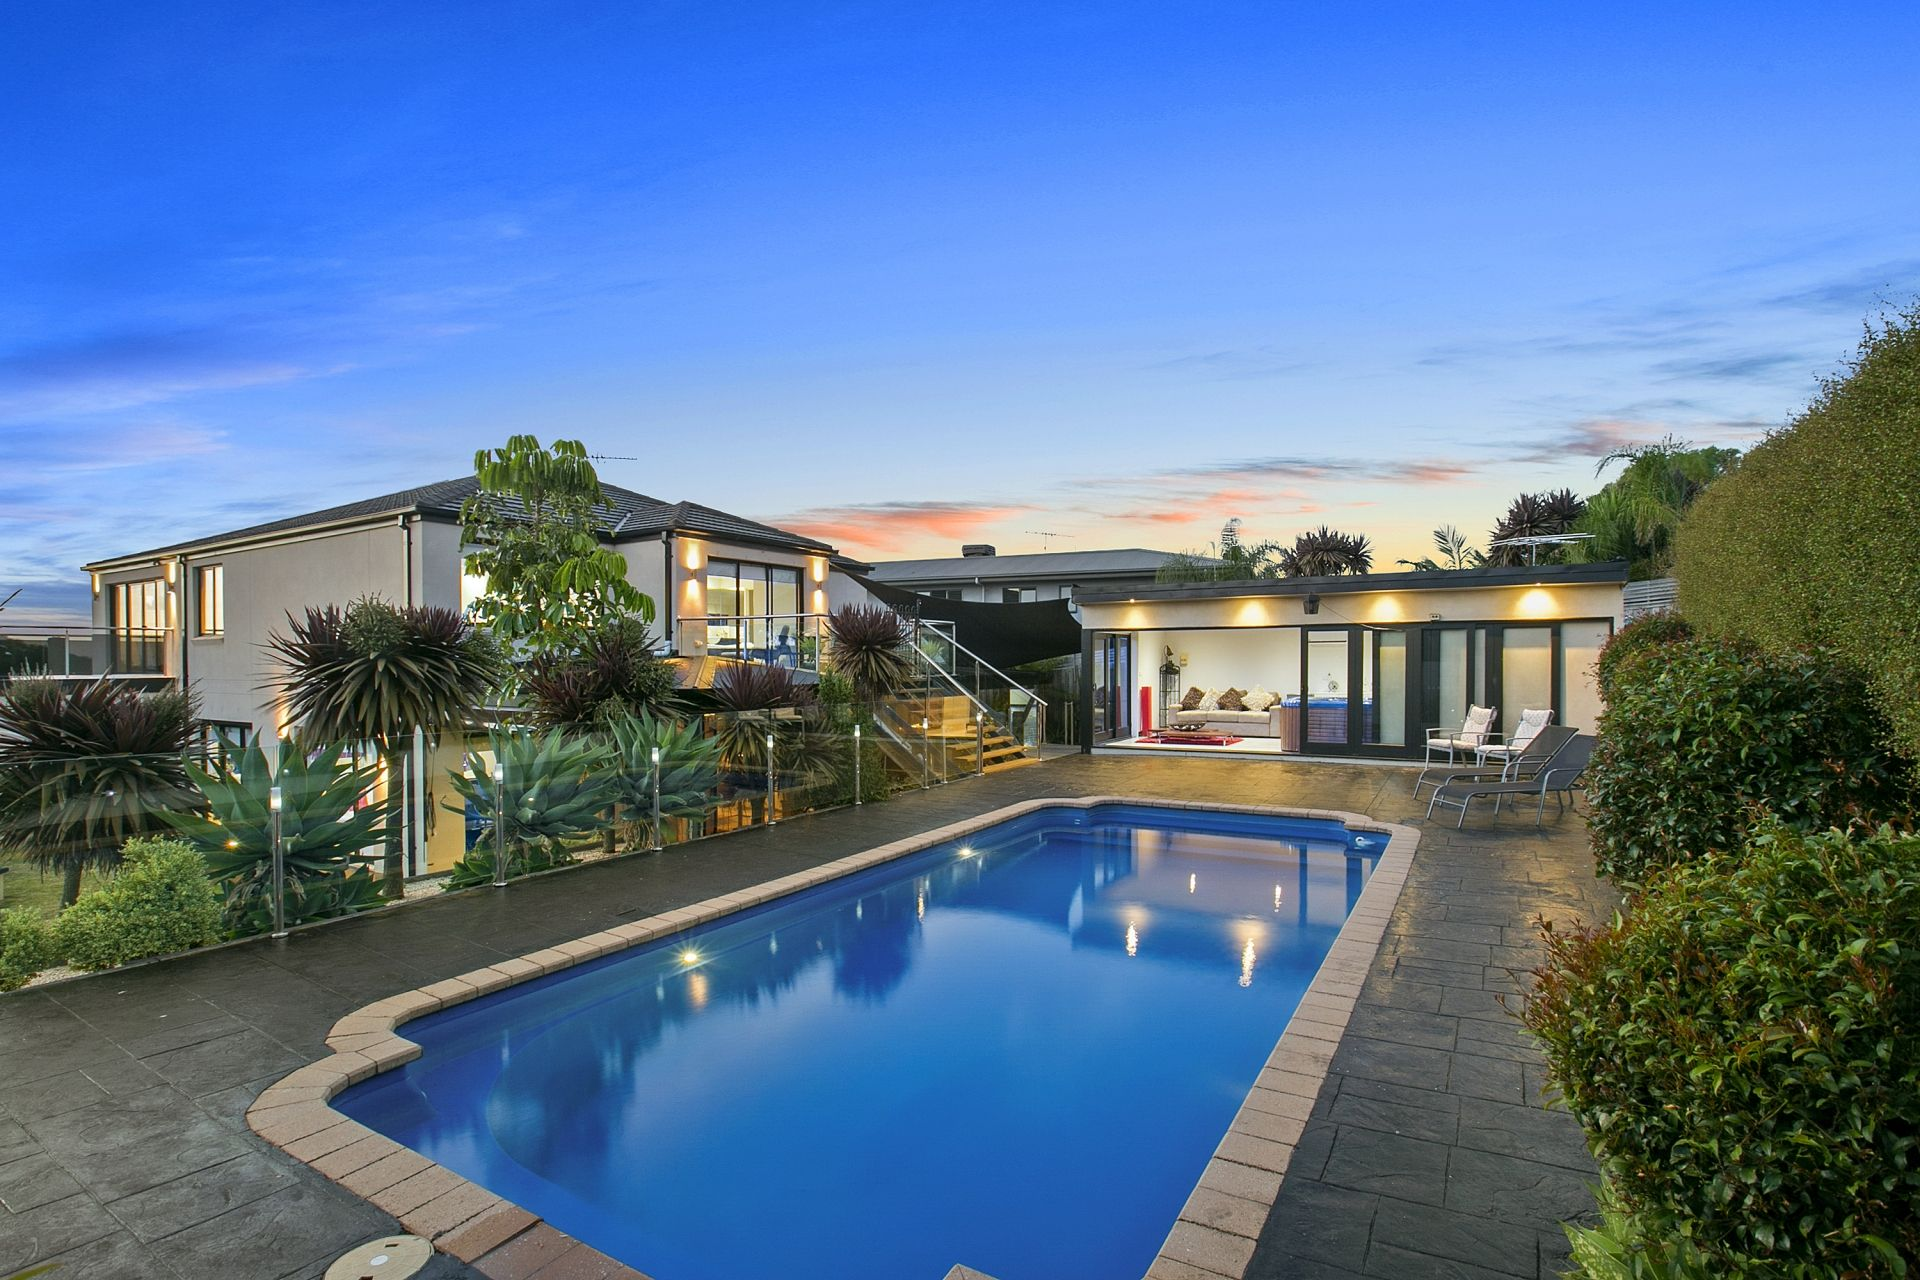 84 Summerfield Drive, MORNINGTON, VIC, 3931 - Image